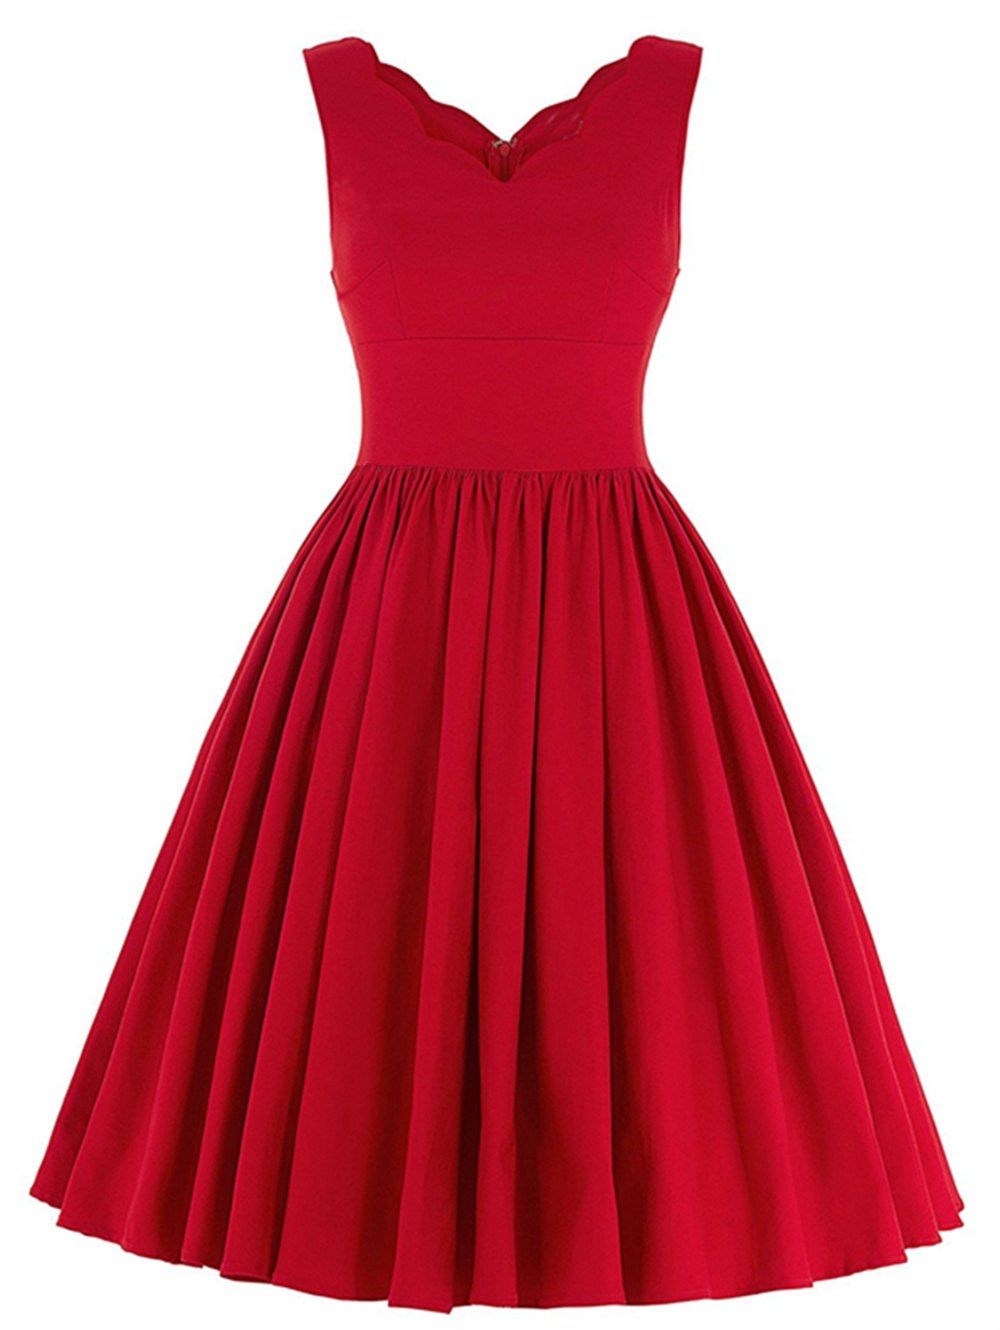 Scalloped A Line Swing Cocktail Dress Red A Line Dress Pleated Party Dress Pleated Skater Dress [ 1330 x 1000 Pixel ]